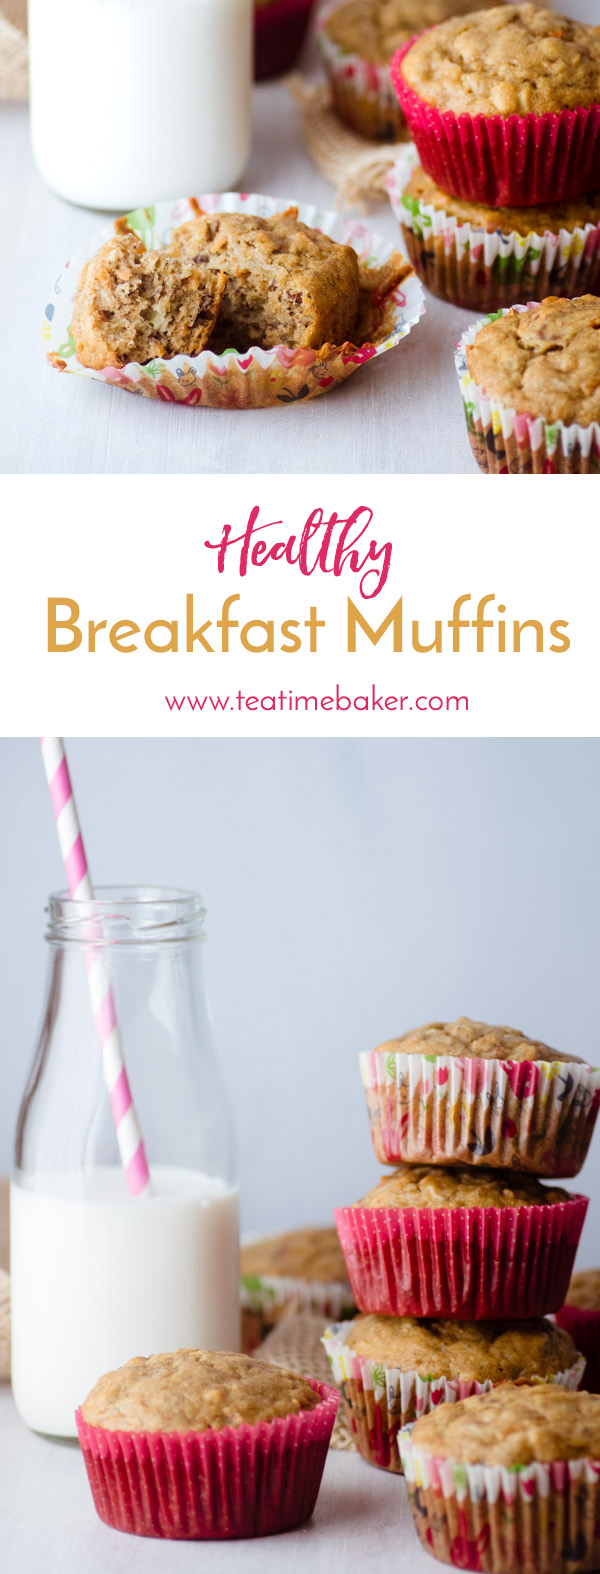 Healthy Breakfast Muffins make a great breakfast when you need something quick in the morning. They are also a kid-friendly snack for Moms on the run! Packed with carrots, bananas, nuts and oatmeal, they are just what you need for busy mornings. | Healthy oatmeal muffin recipe | Kid friendly breakfast muffins | Carrot, Banana, Oatmeal muffin recipe | The Teatime Baker | #healthyoatmealmuffinrecipe #healthybreakfastmuffins #dairyfreemuffins